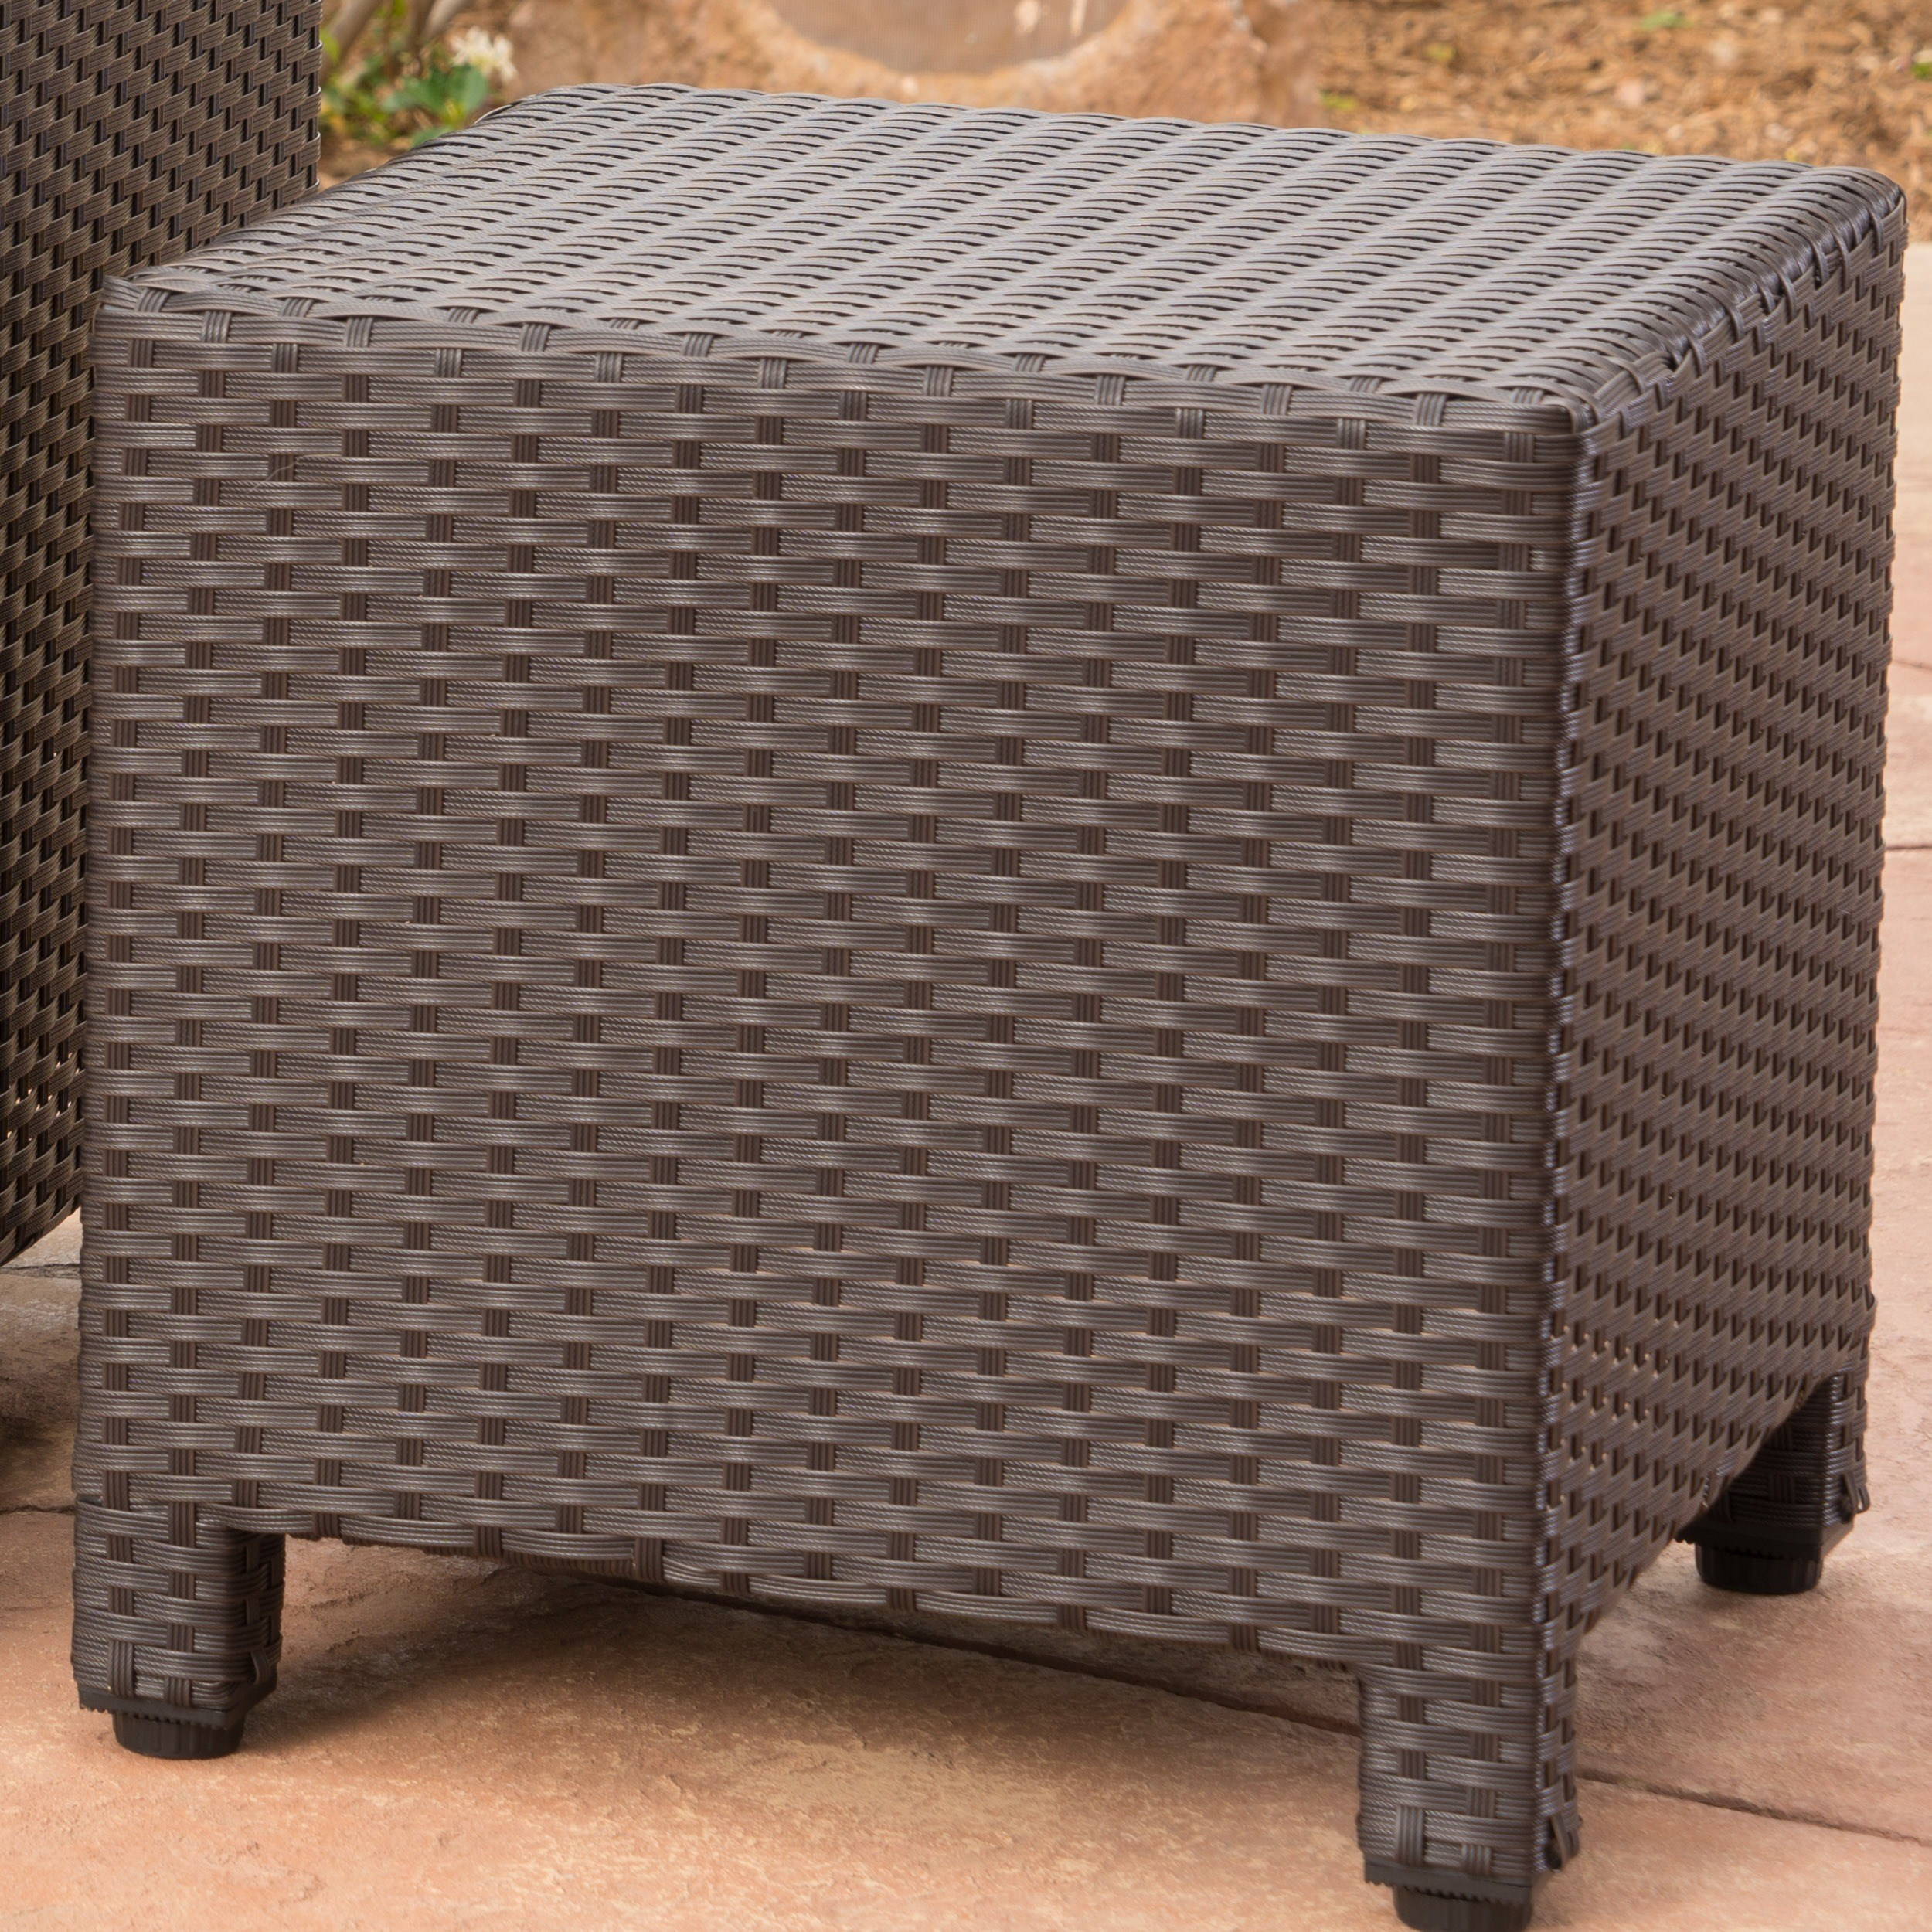 puerta outdoor wicker square accent side table christopher knight home with storage free shipping today vintage tier grey dining room black and white glass lamp tables mosaic